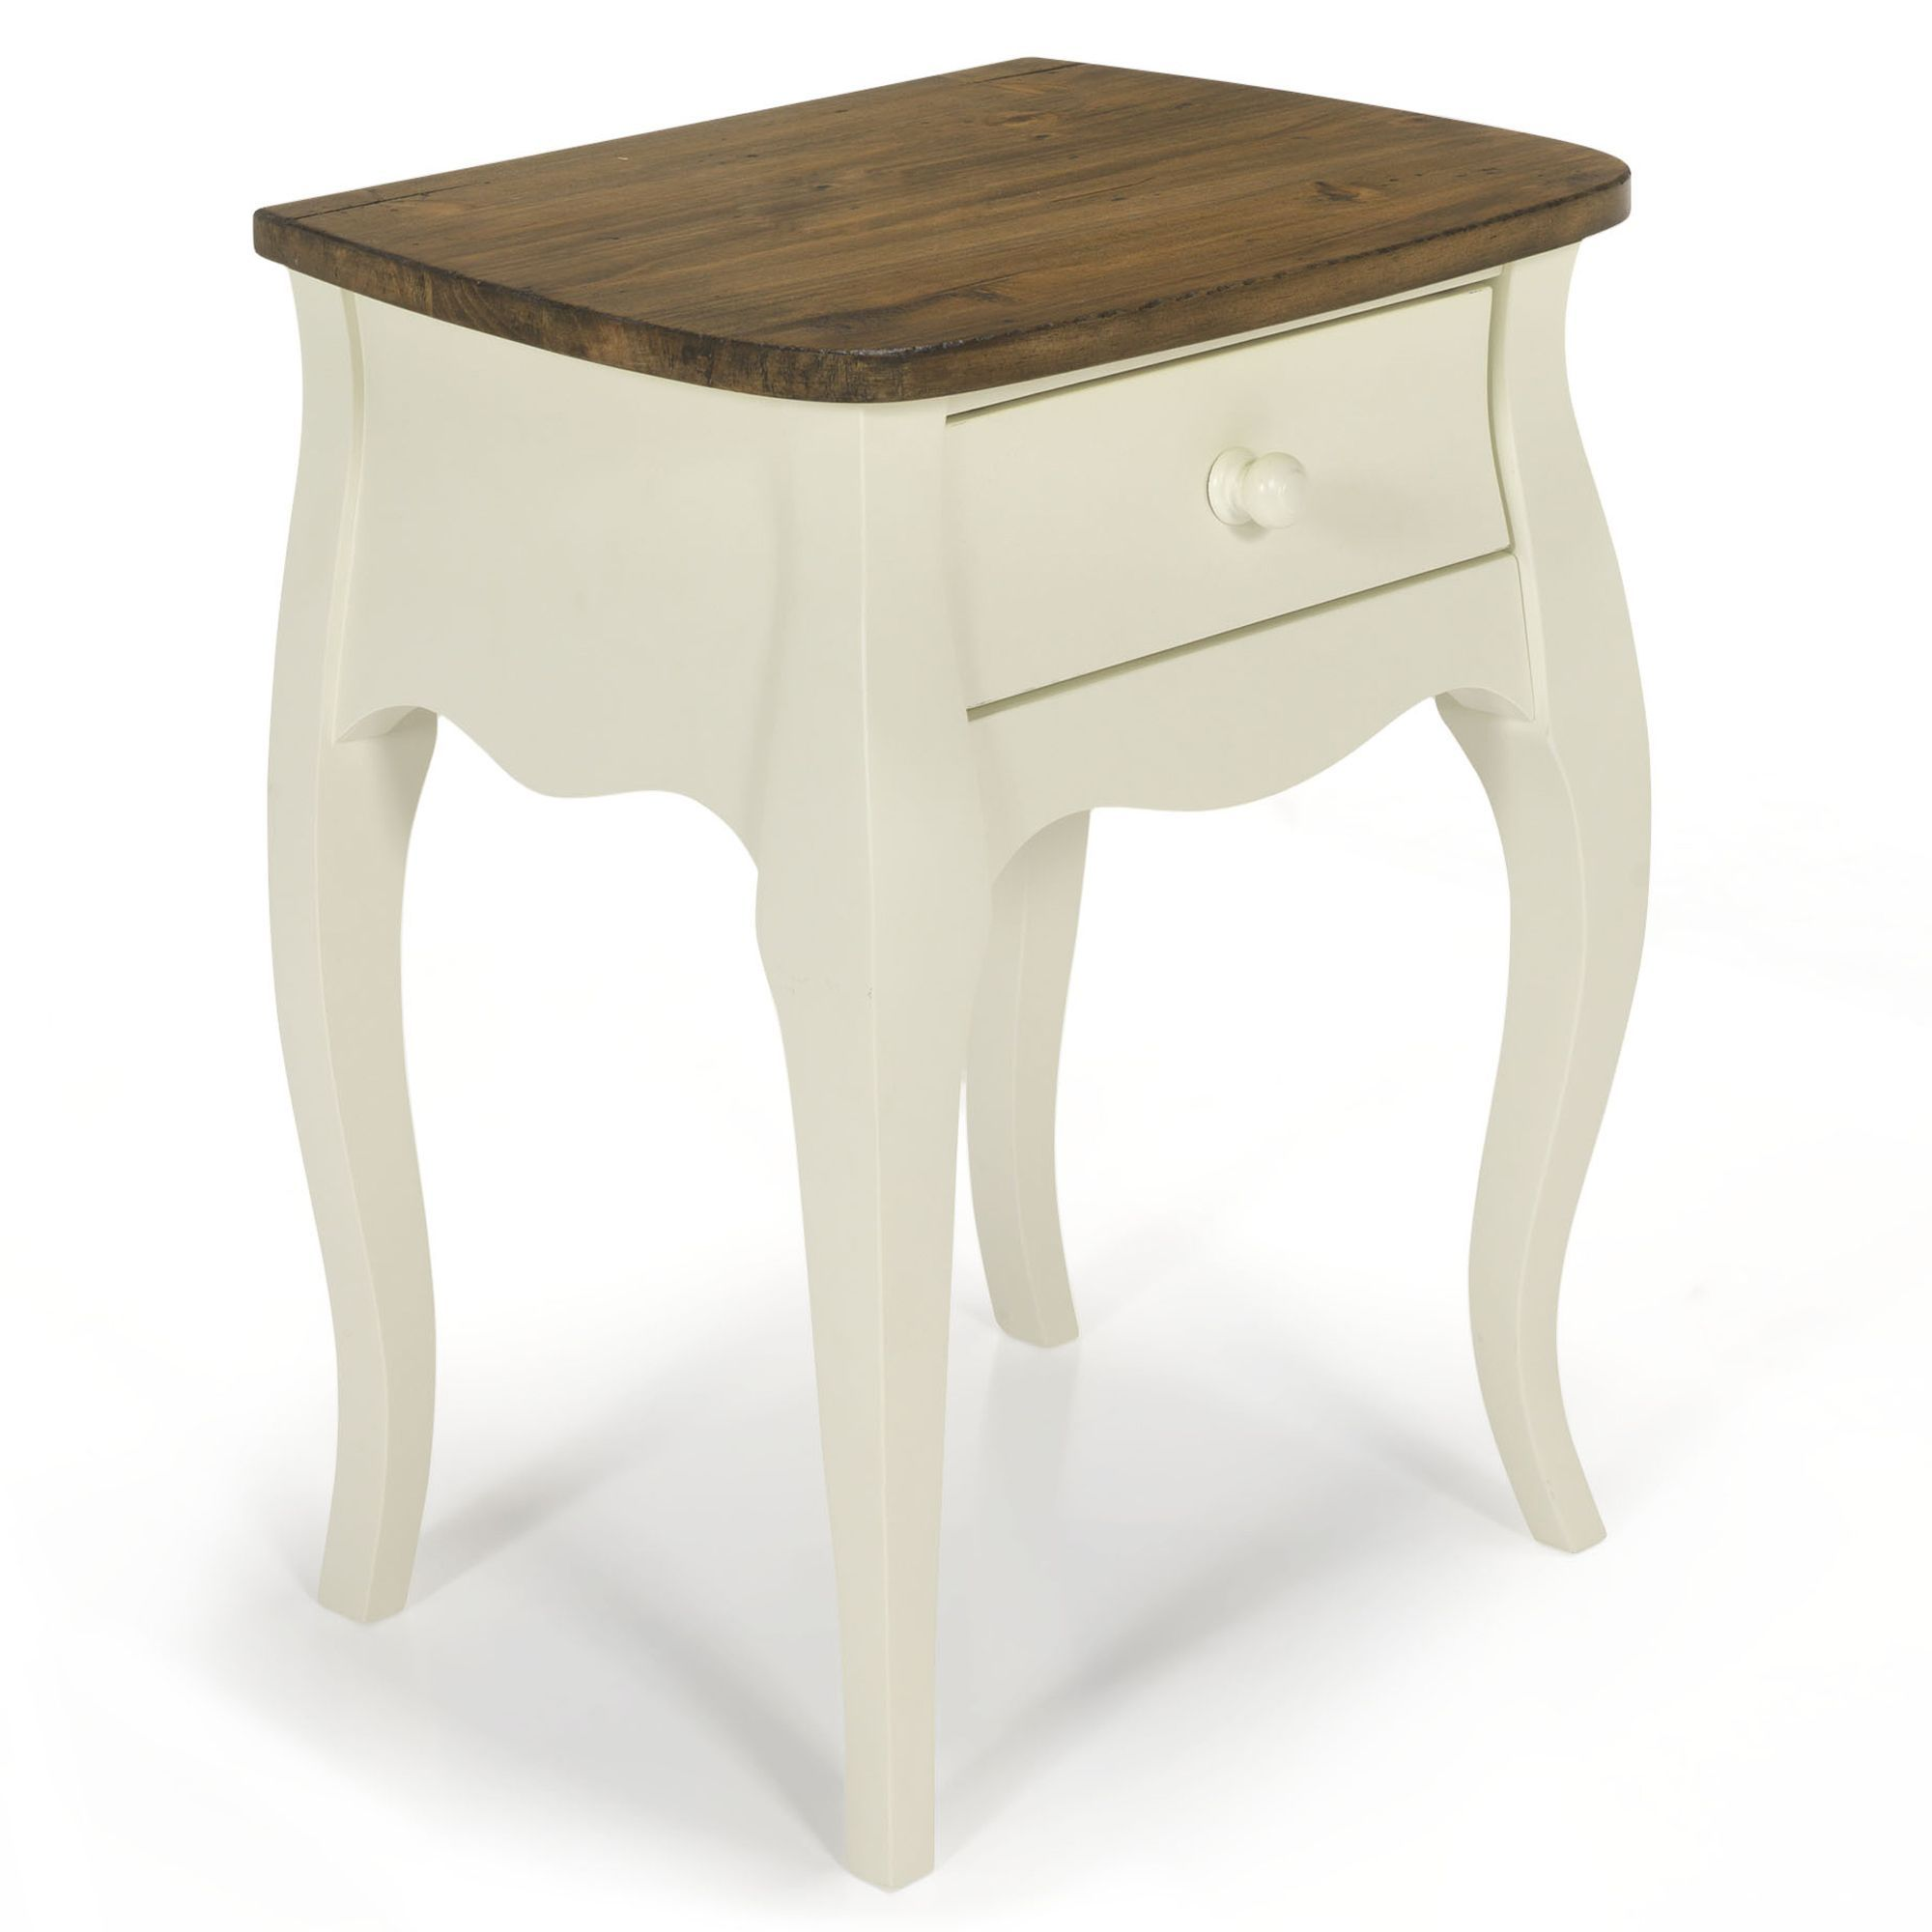 Chevet Romantique Blanc 1 Tiroir Blanc Avec Top Naturel Evelyn Les Tables De Chevet Chambre Decoration D Meuble Table De Chevet Blanche Table De Chevet